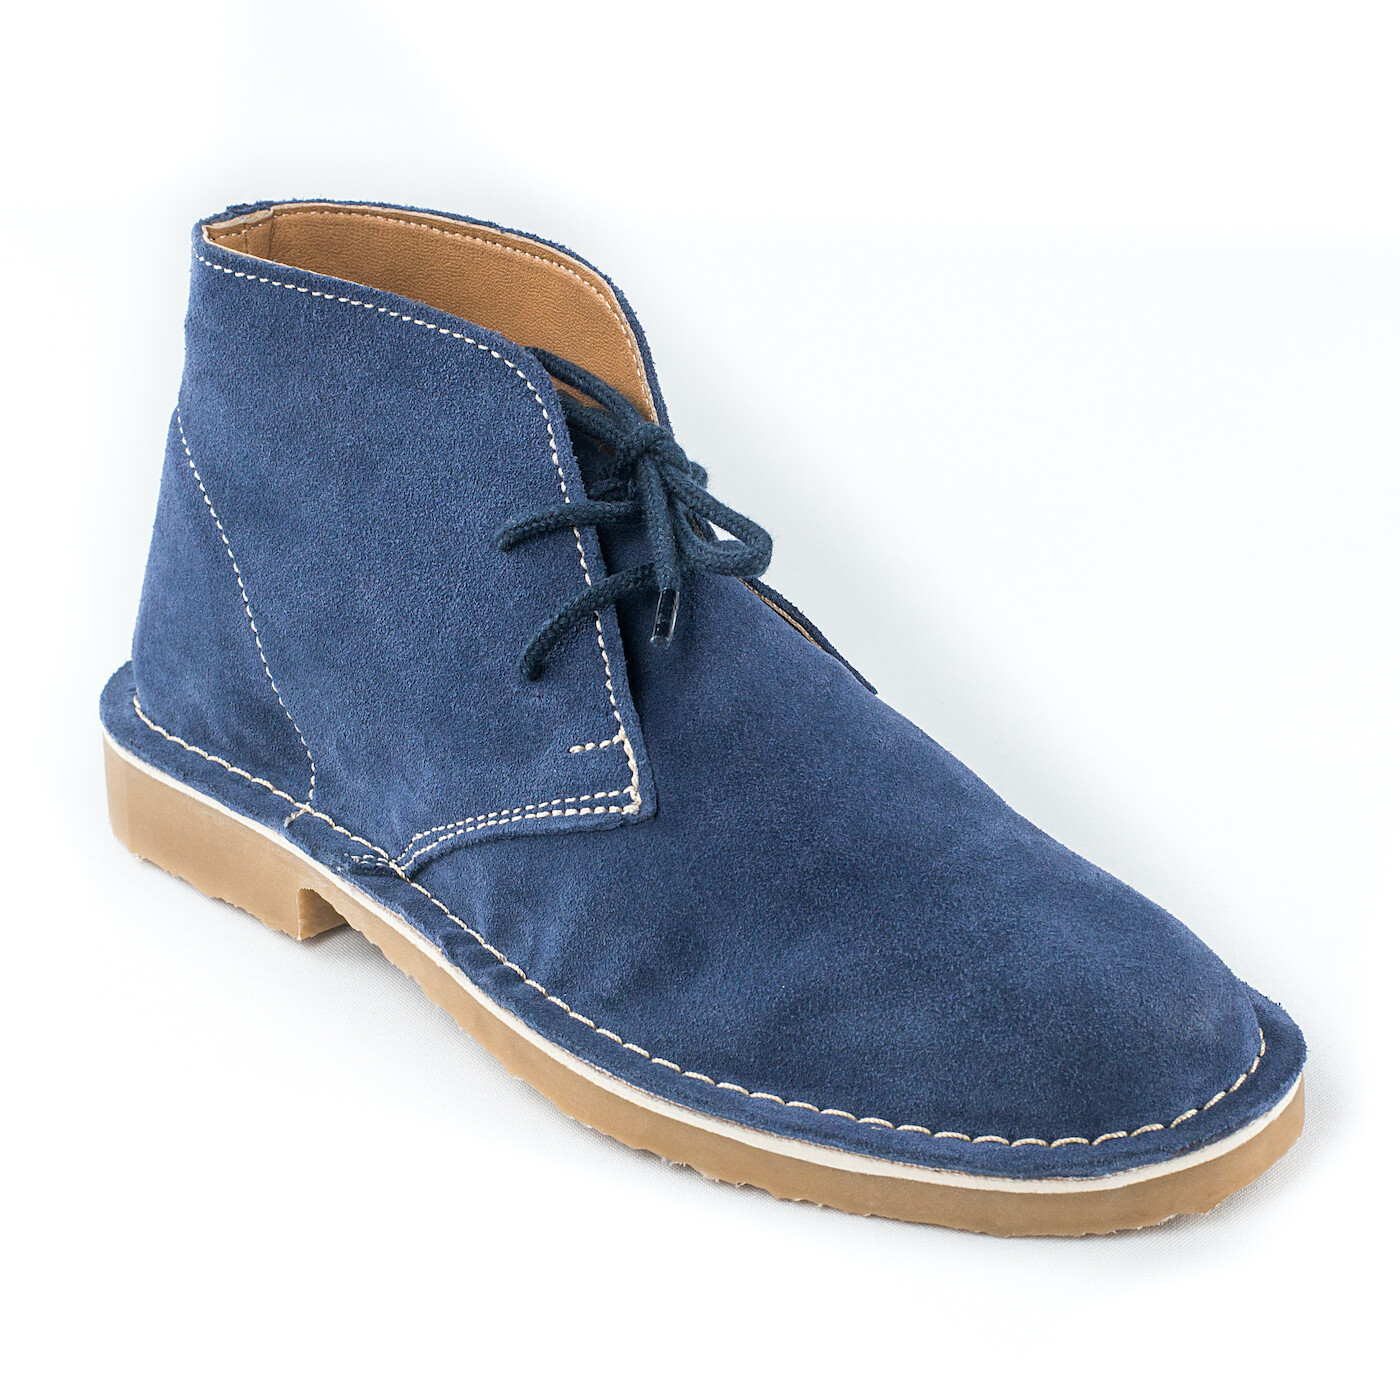 The Presley Blue Suede Vellie